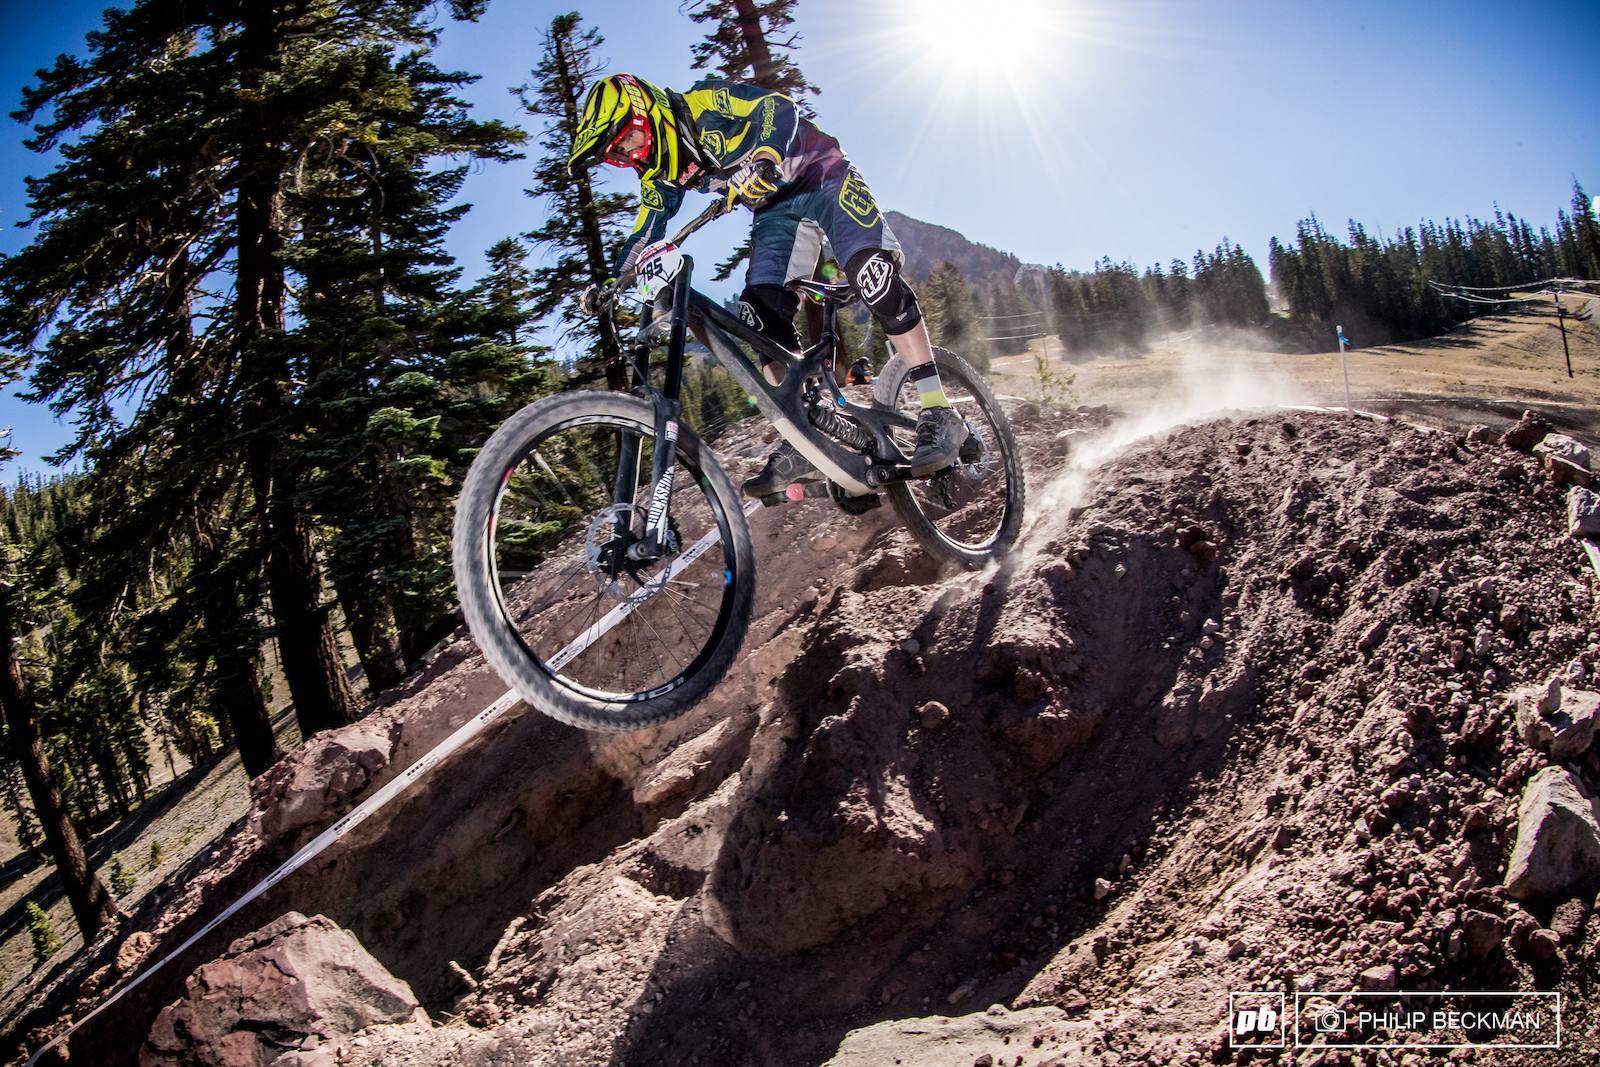 The USA Cycling MTB National Championships took place at Mammoth two months ago for the second consecutive year . The Elevator Shaft was daunting then and has not gotten any easier since then.